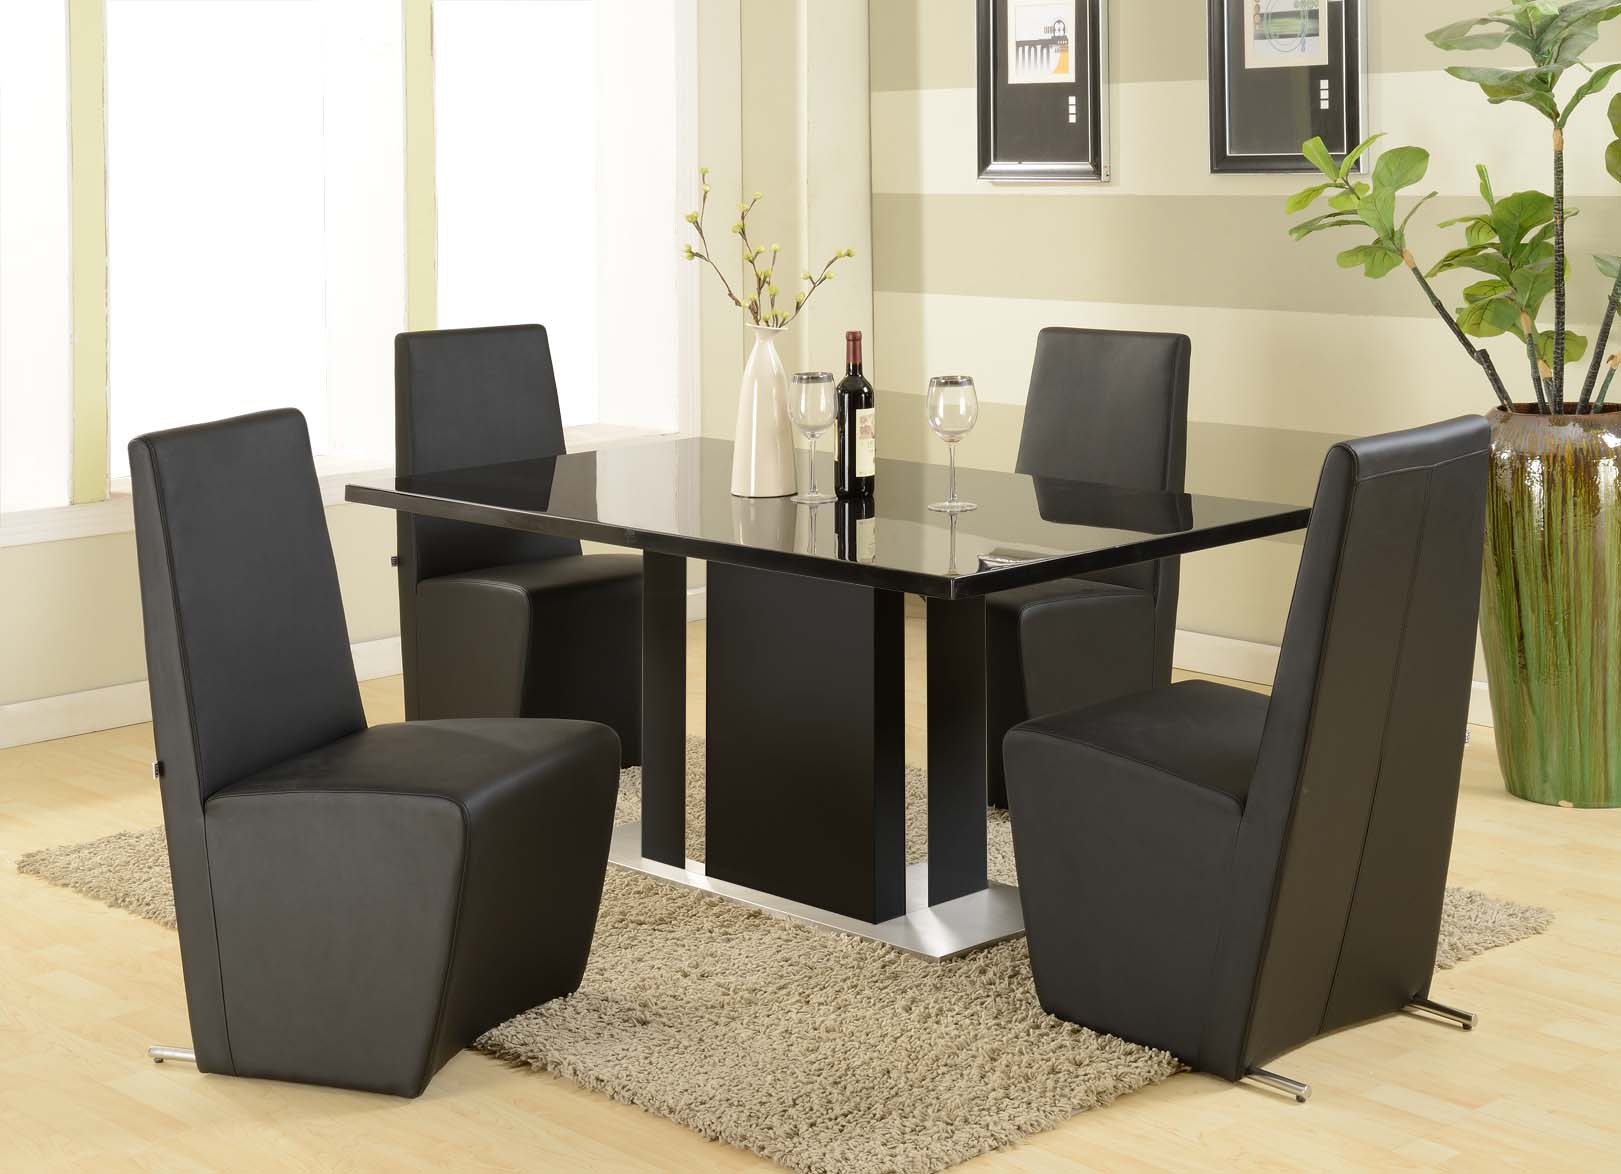 Modern furniture table home design roosa for Dining table set designs